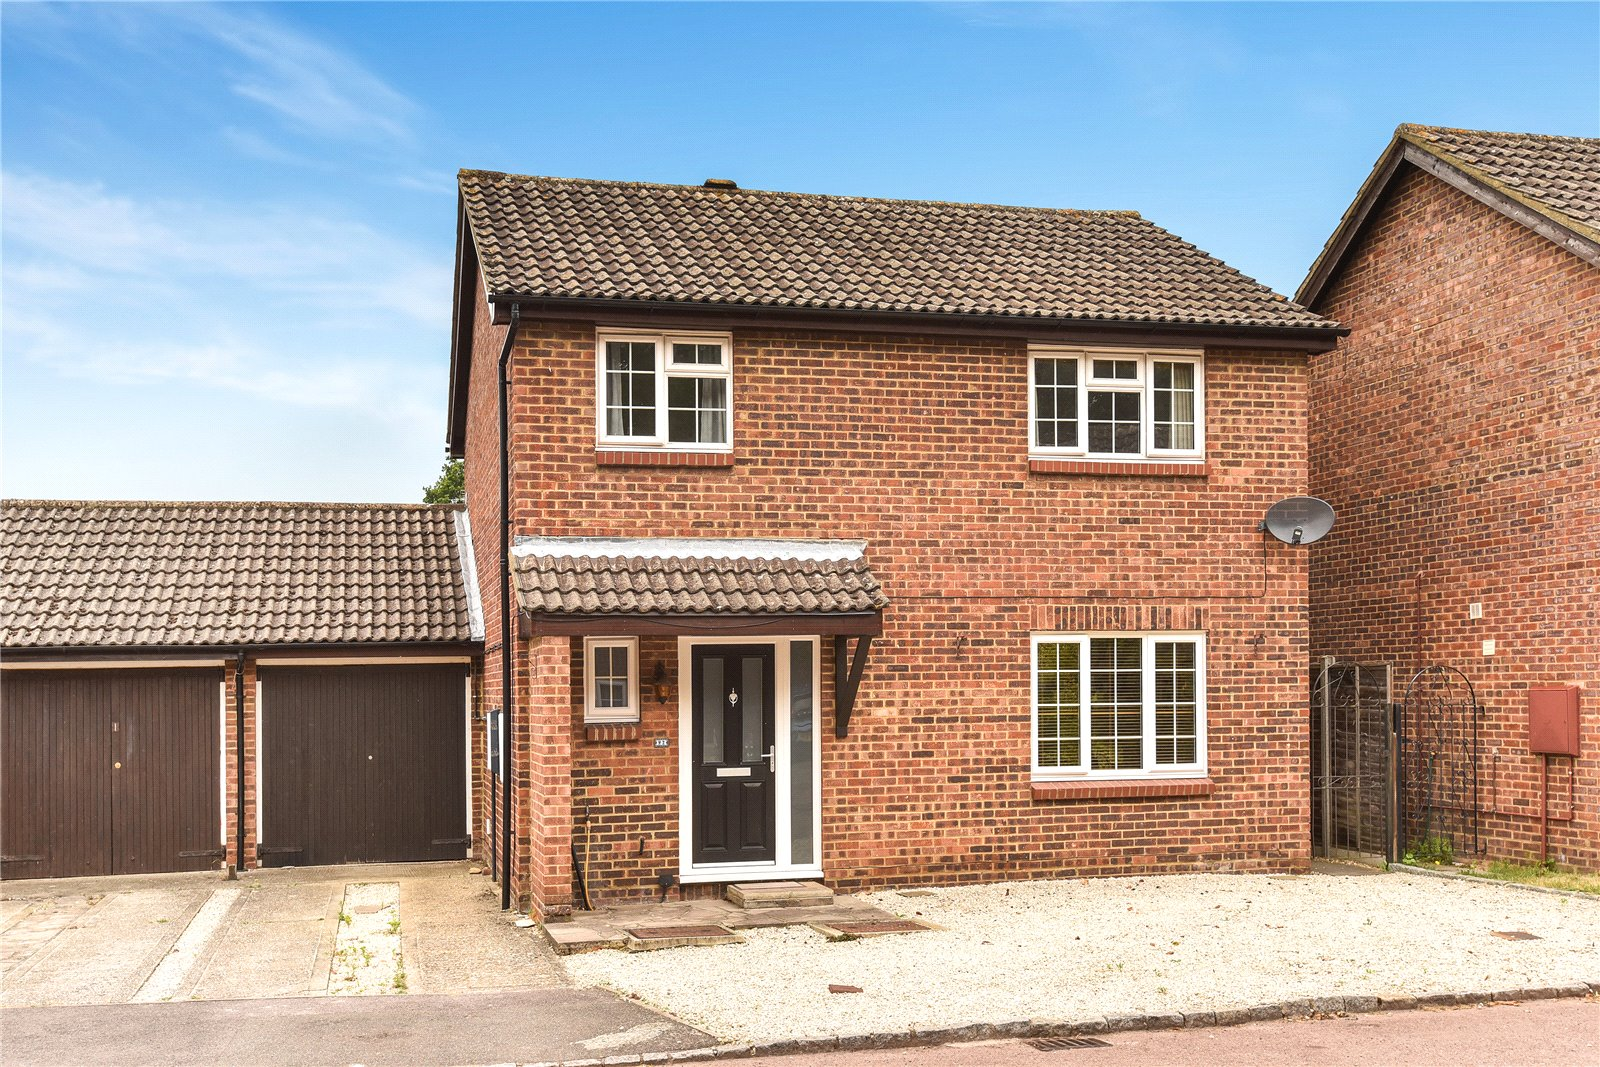 4 Bedrooms Detached House for sale in Bluethroat Close, College Town, Sandhurst, Berkshire, GU47